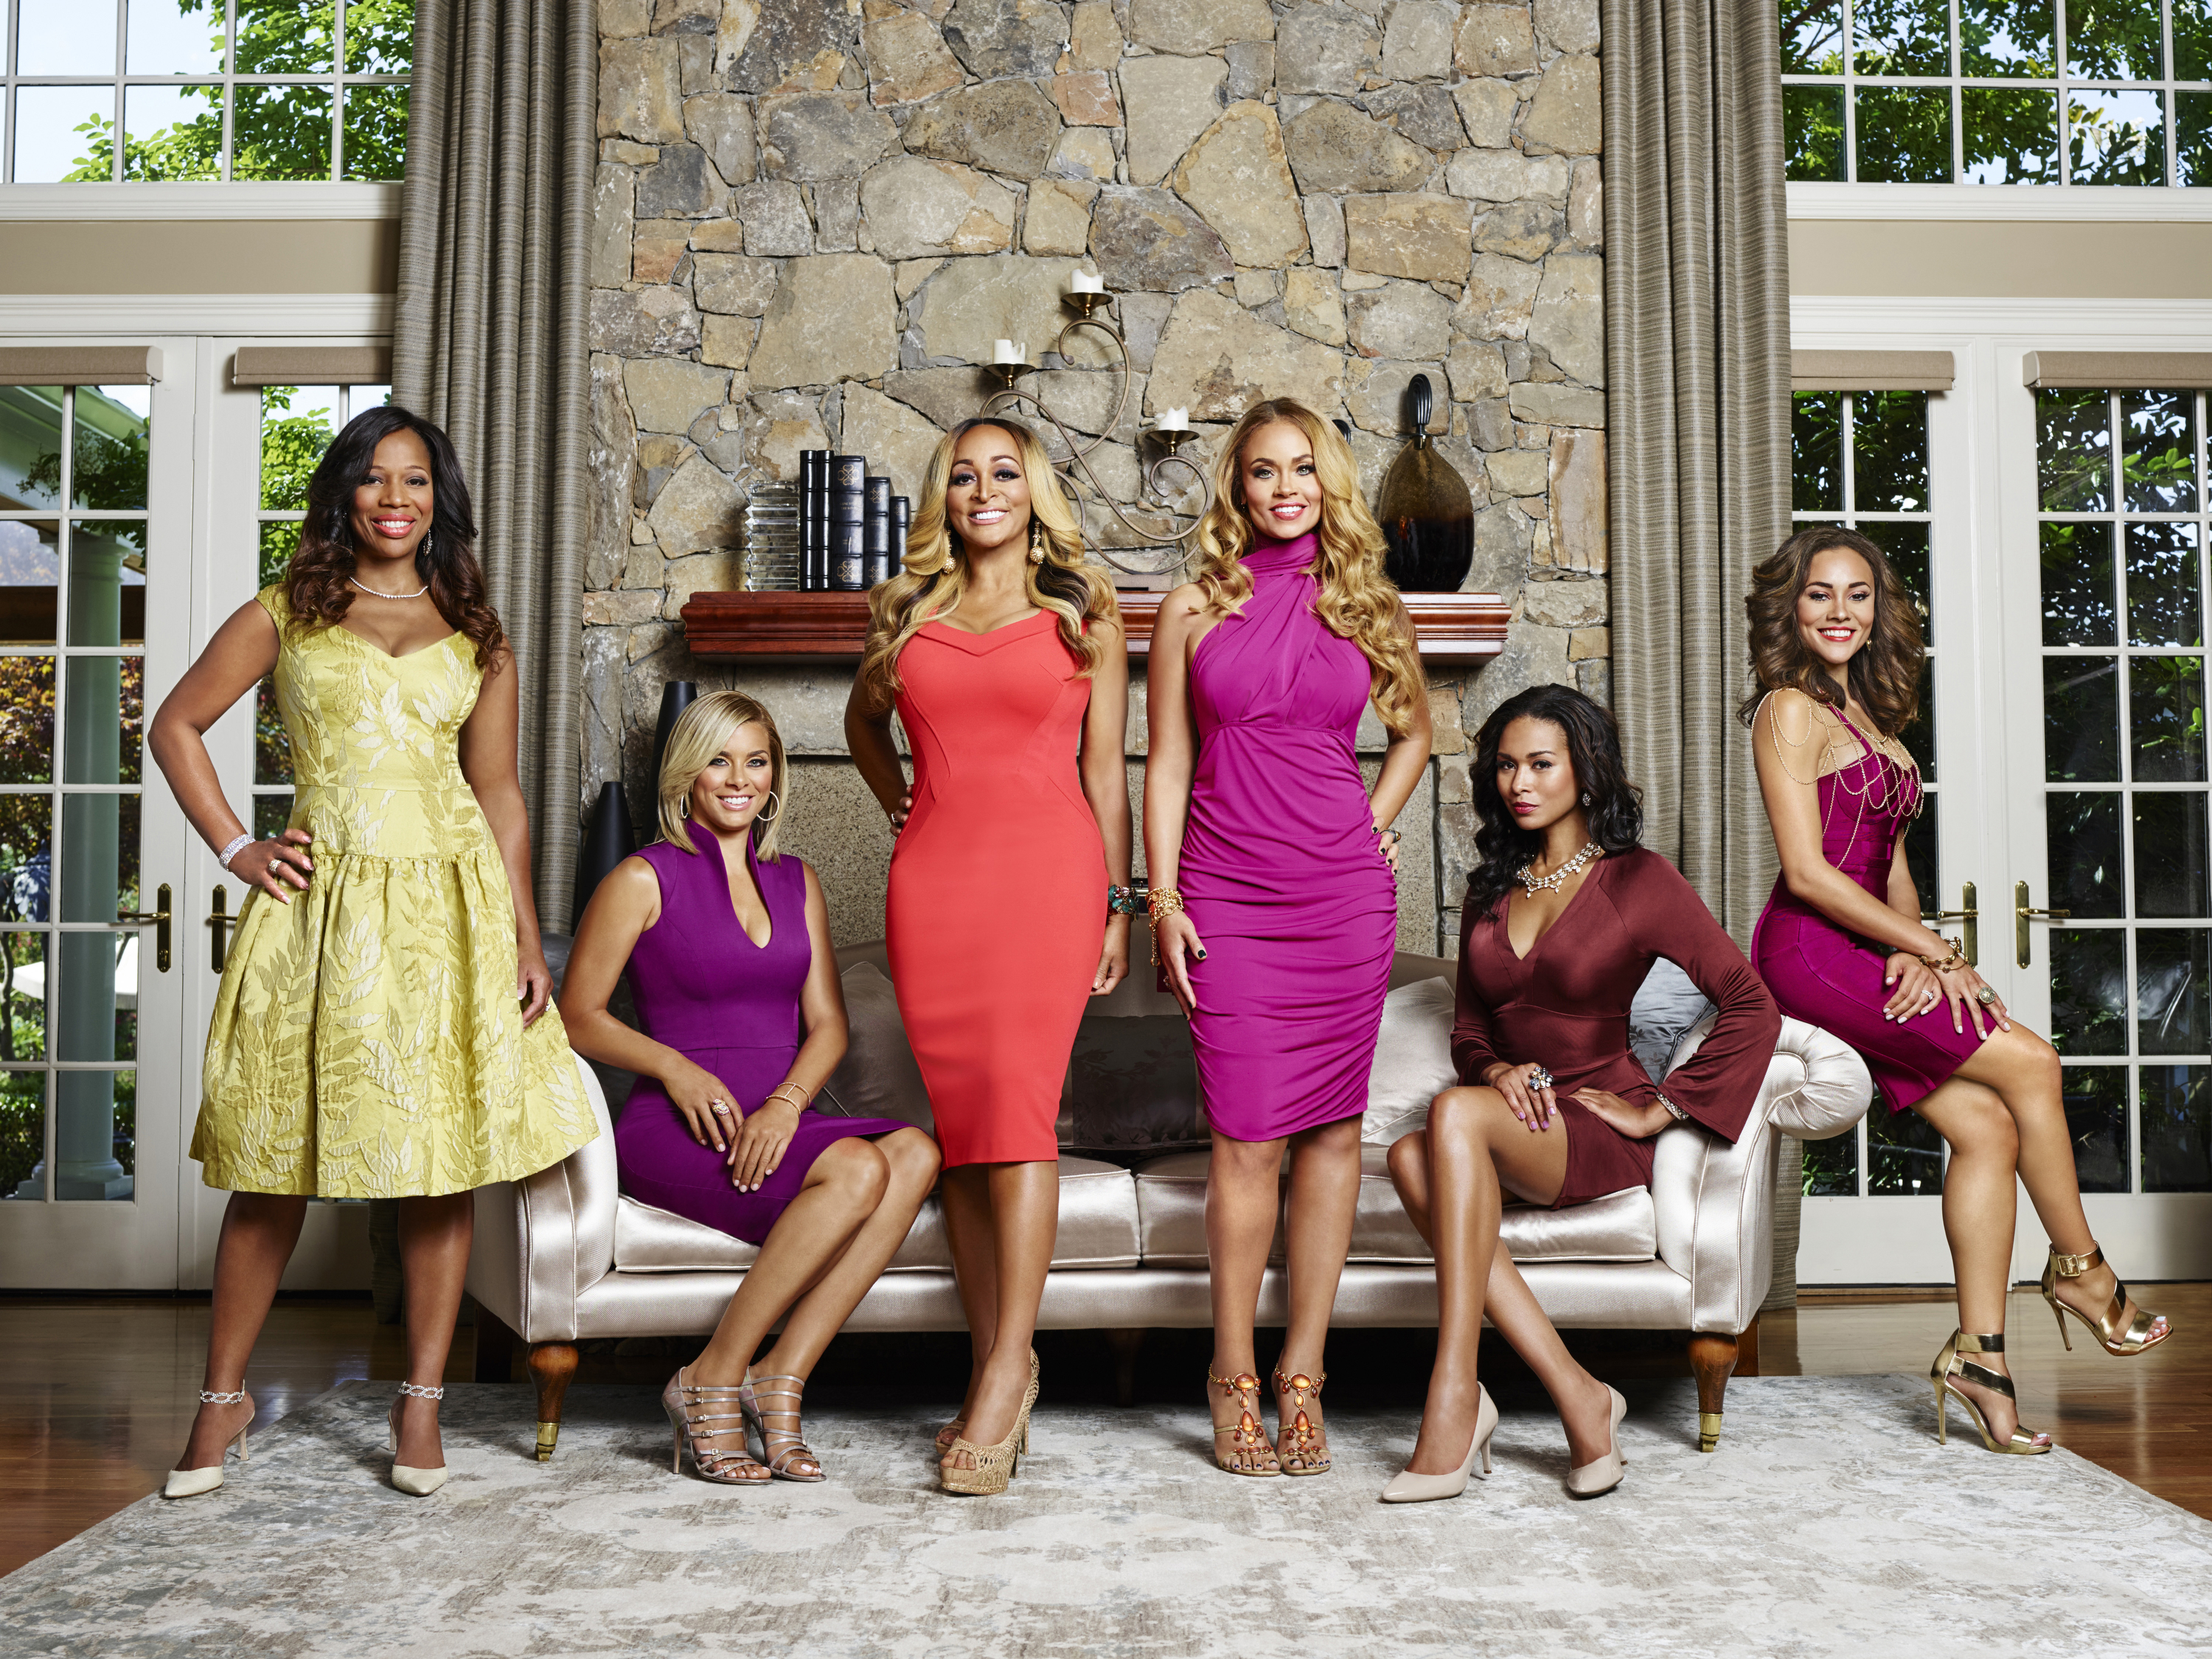 6bc3a7fff39 The Real Housewives of Potomac: Katie Rost | BU Today | Boston ...